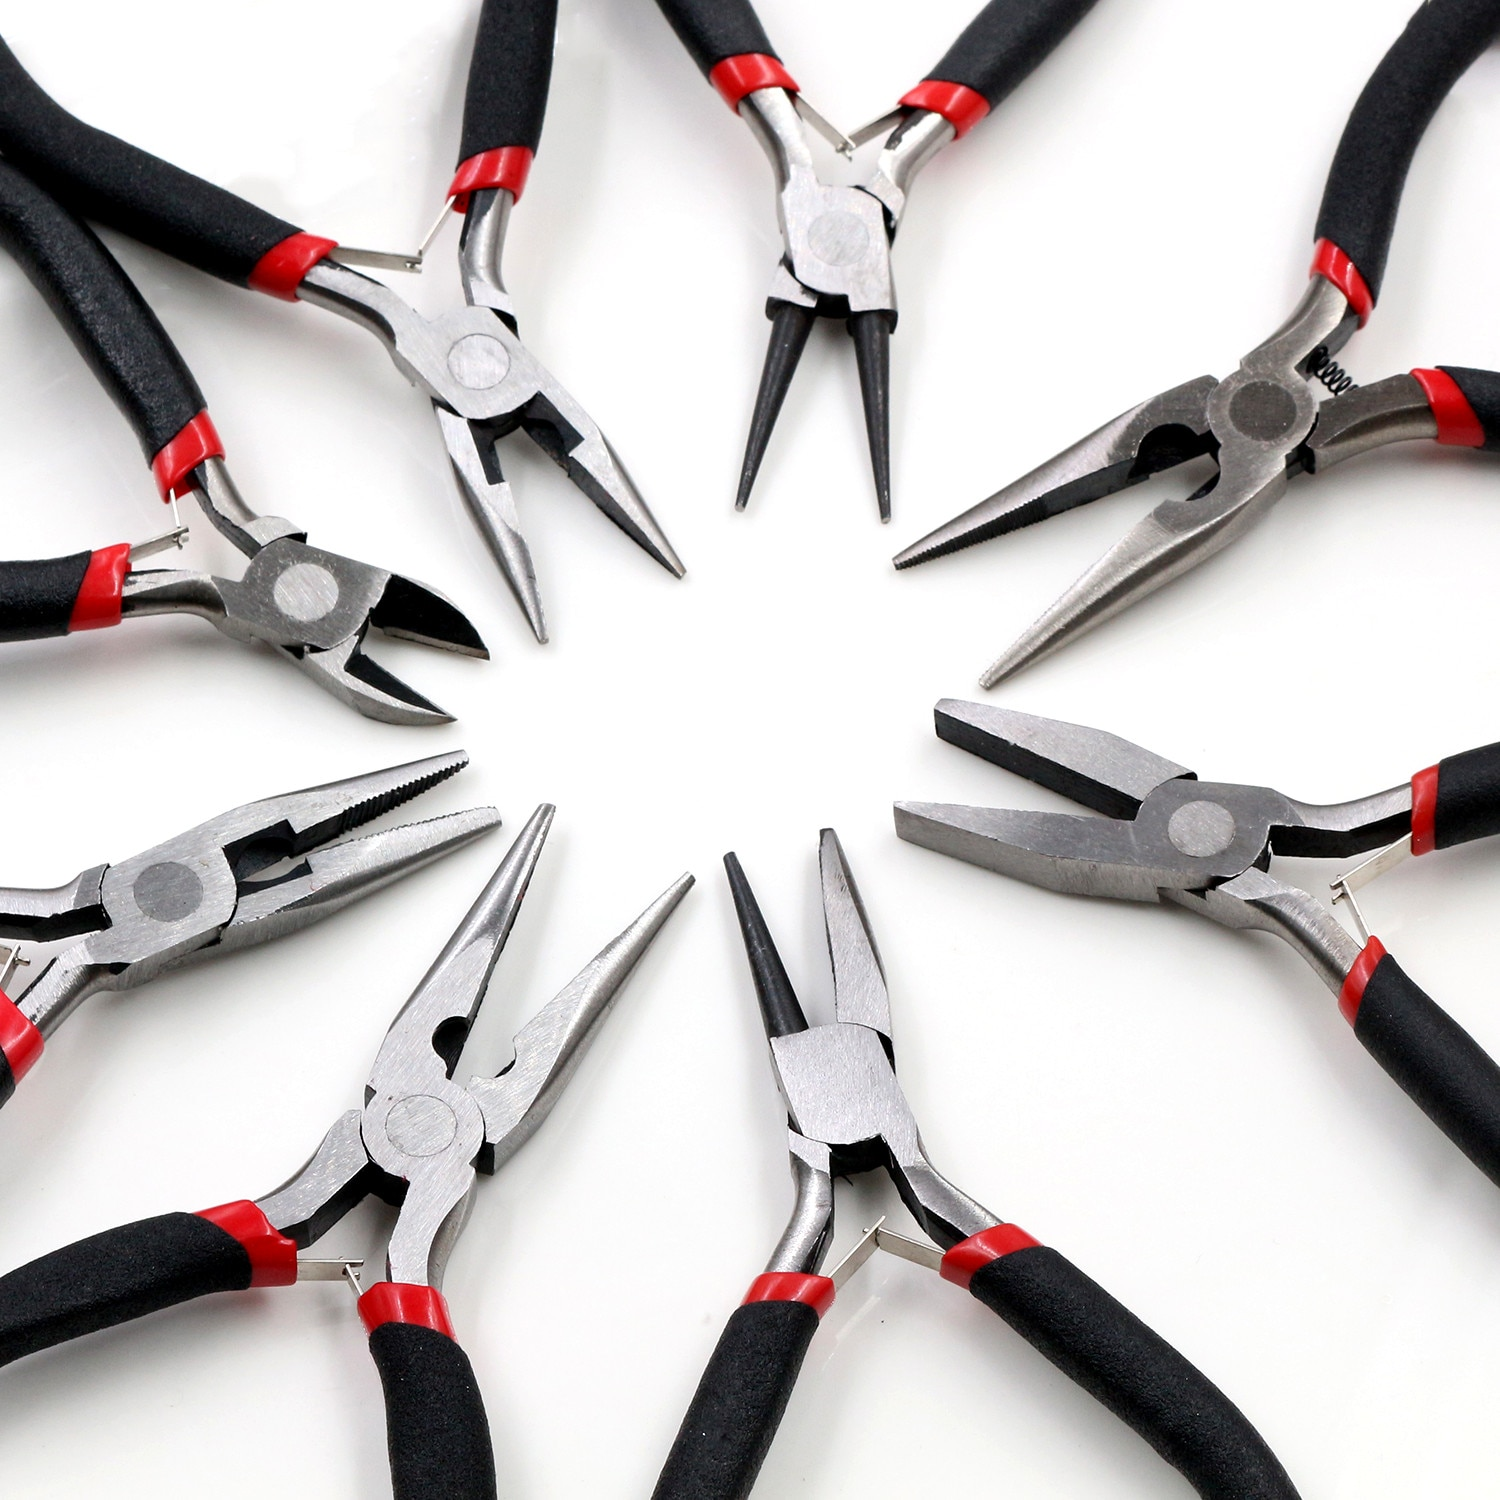 1 Piece Stainless Steel Needle Nose Pliers Jewelry Making Hand Tool Black 12.5cm